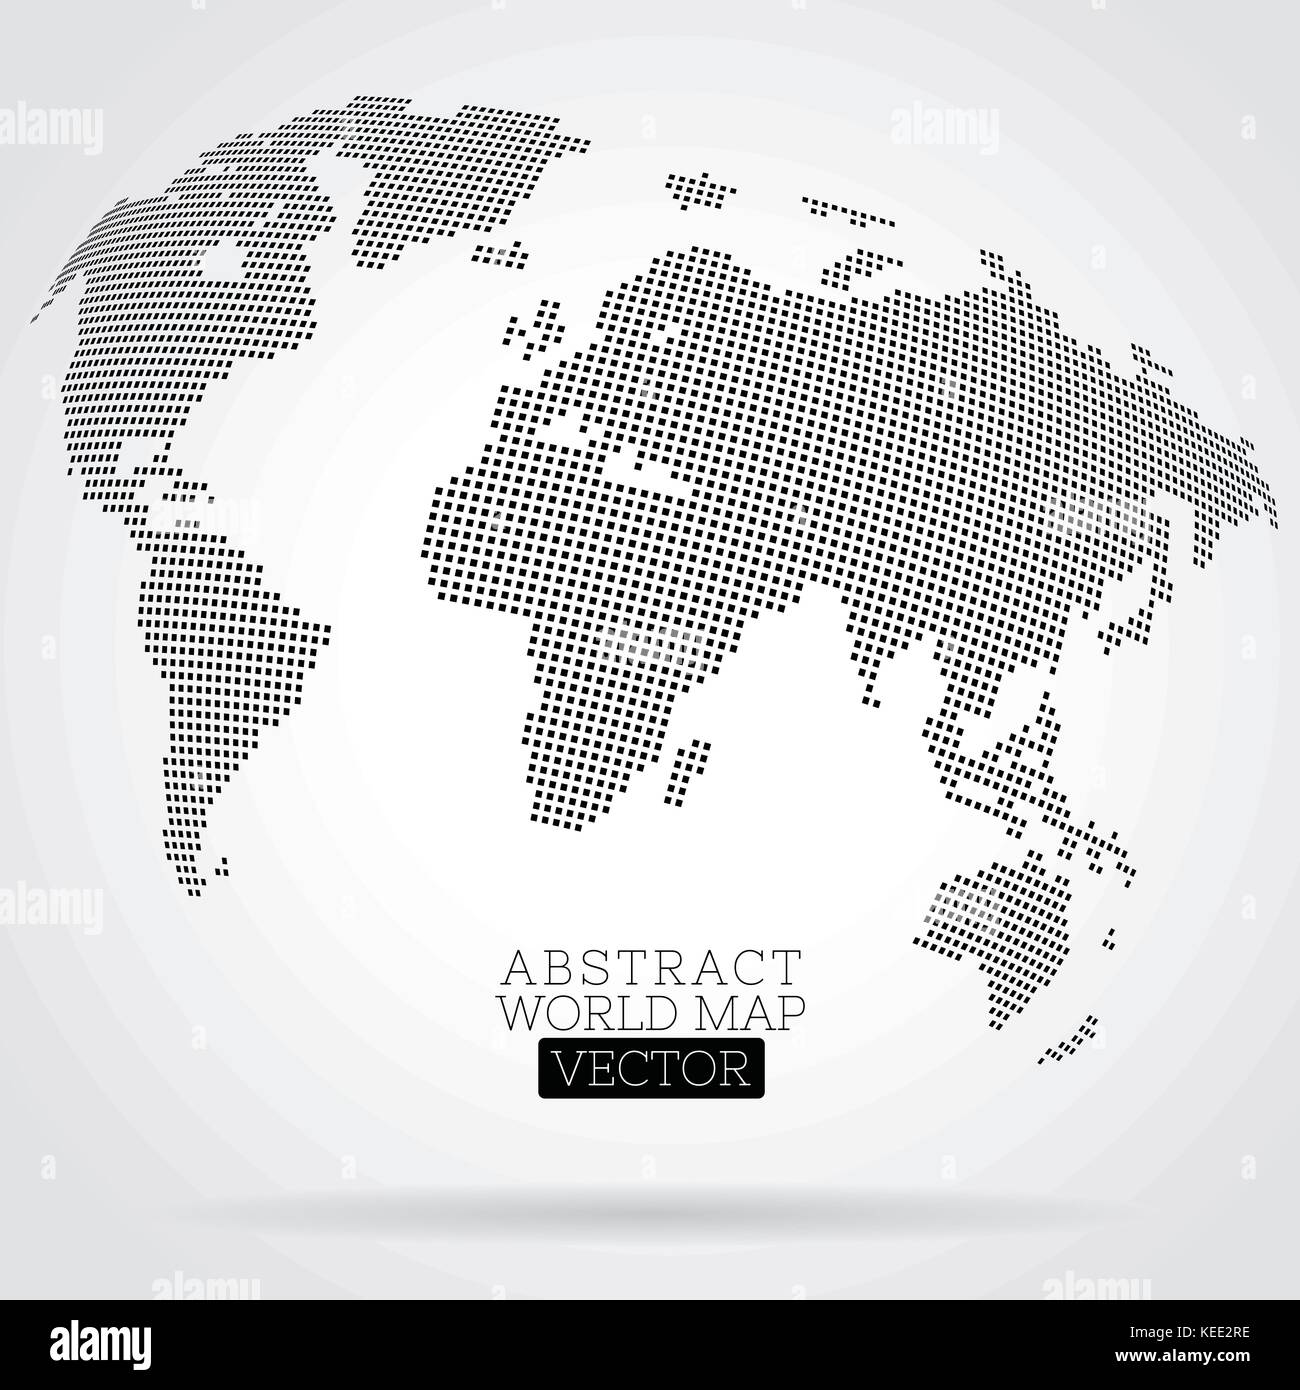 Pixel world map made from small squares stock vector art pixel world map made from small squares gumiabroncs Image collections